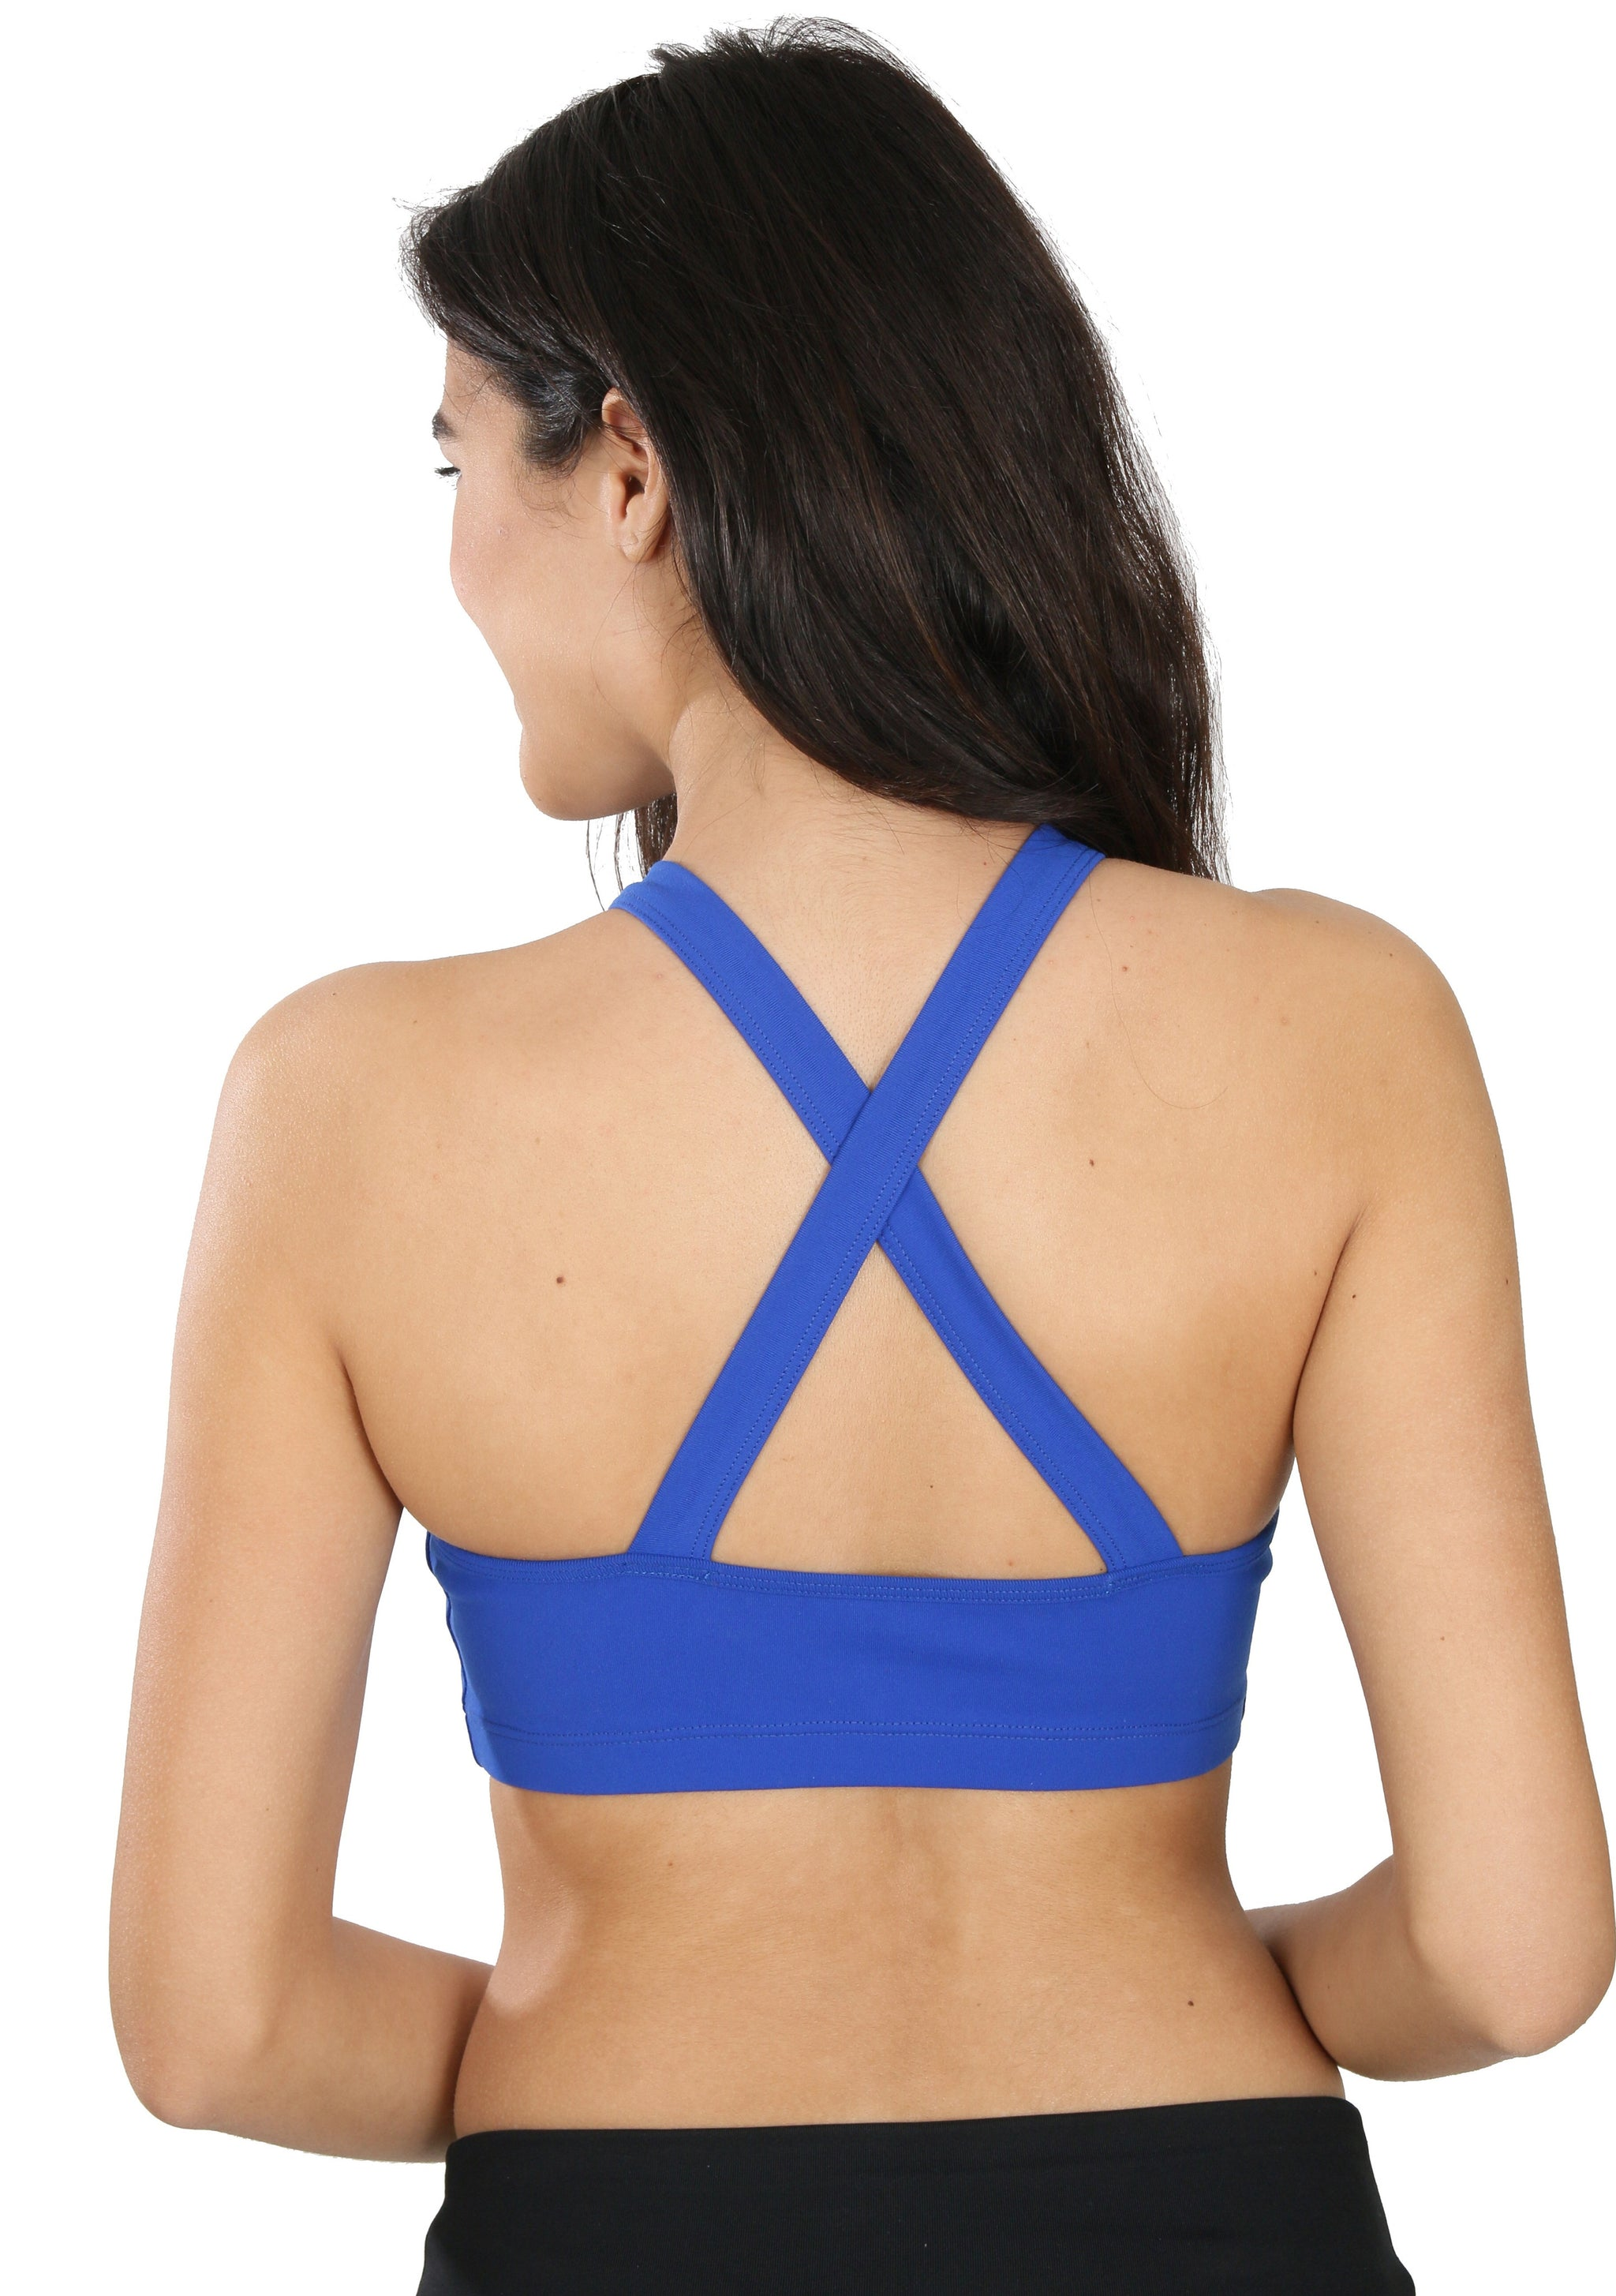 Yoga Sports bra | Comfy & beautiful fitness bras | Blue Lavaloka